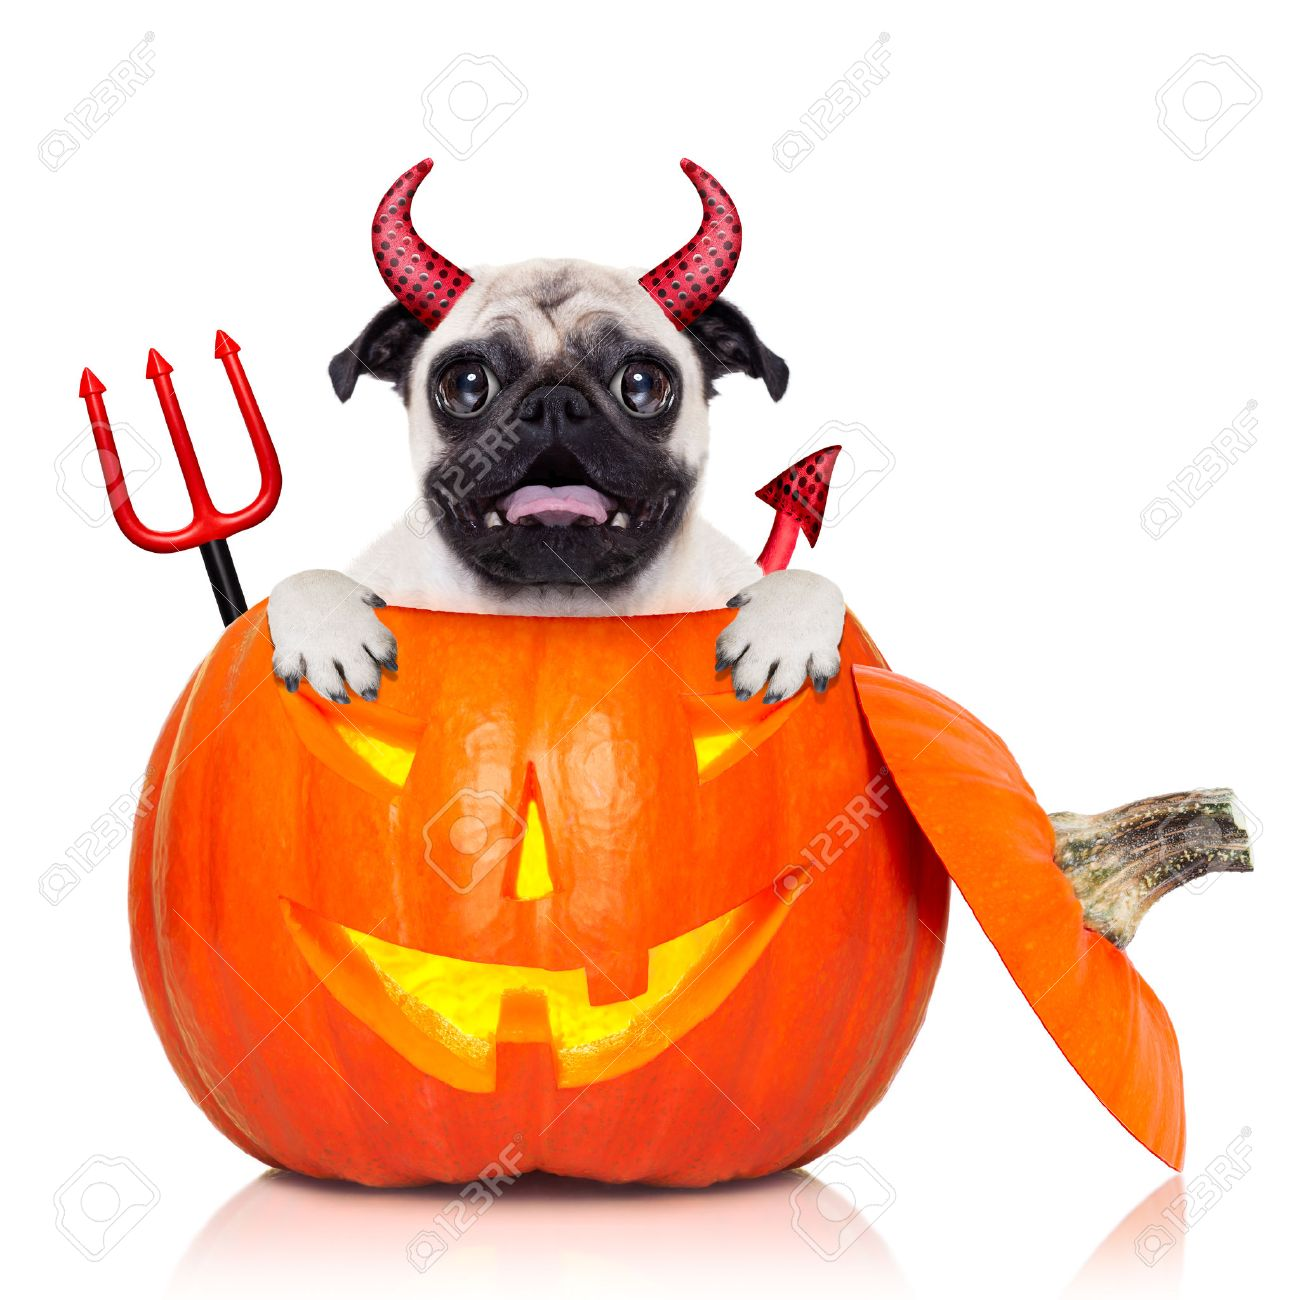 halloween devil pug dog inside pumpkin scared and frightened isolated on white background Stock  sc 1 st  123RF.com & Halloween Devil Pug Dog Inside Pumpkin Scared And Frightened ...